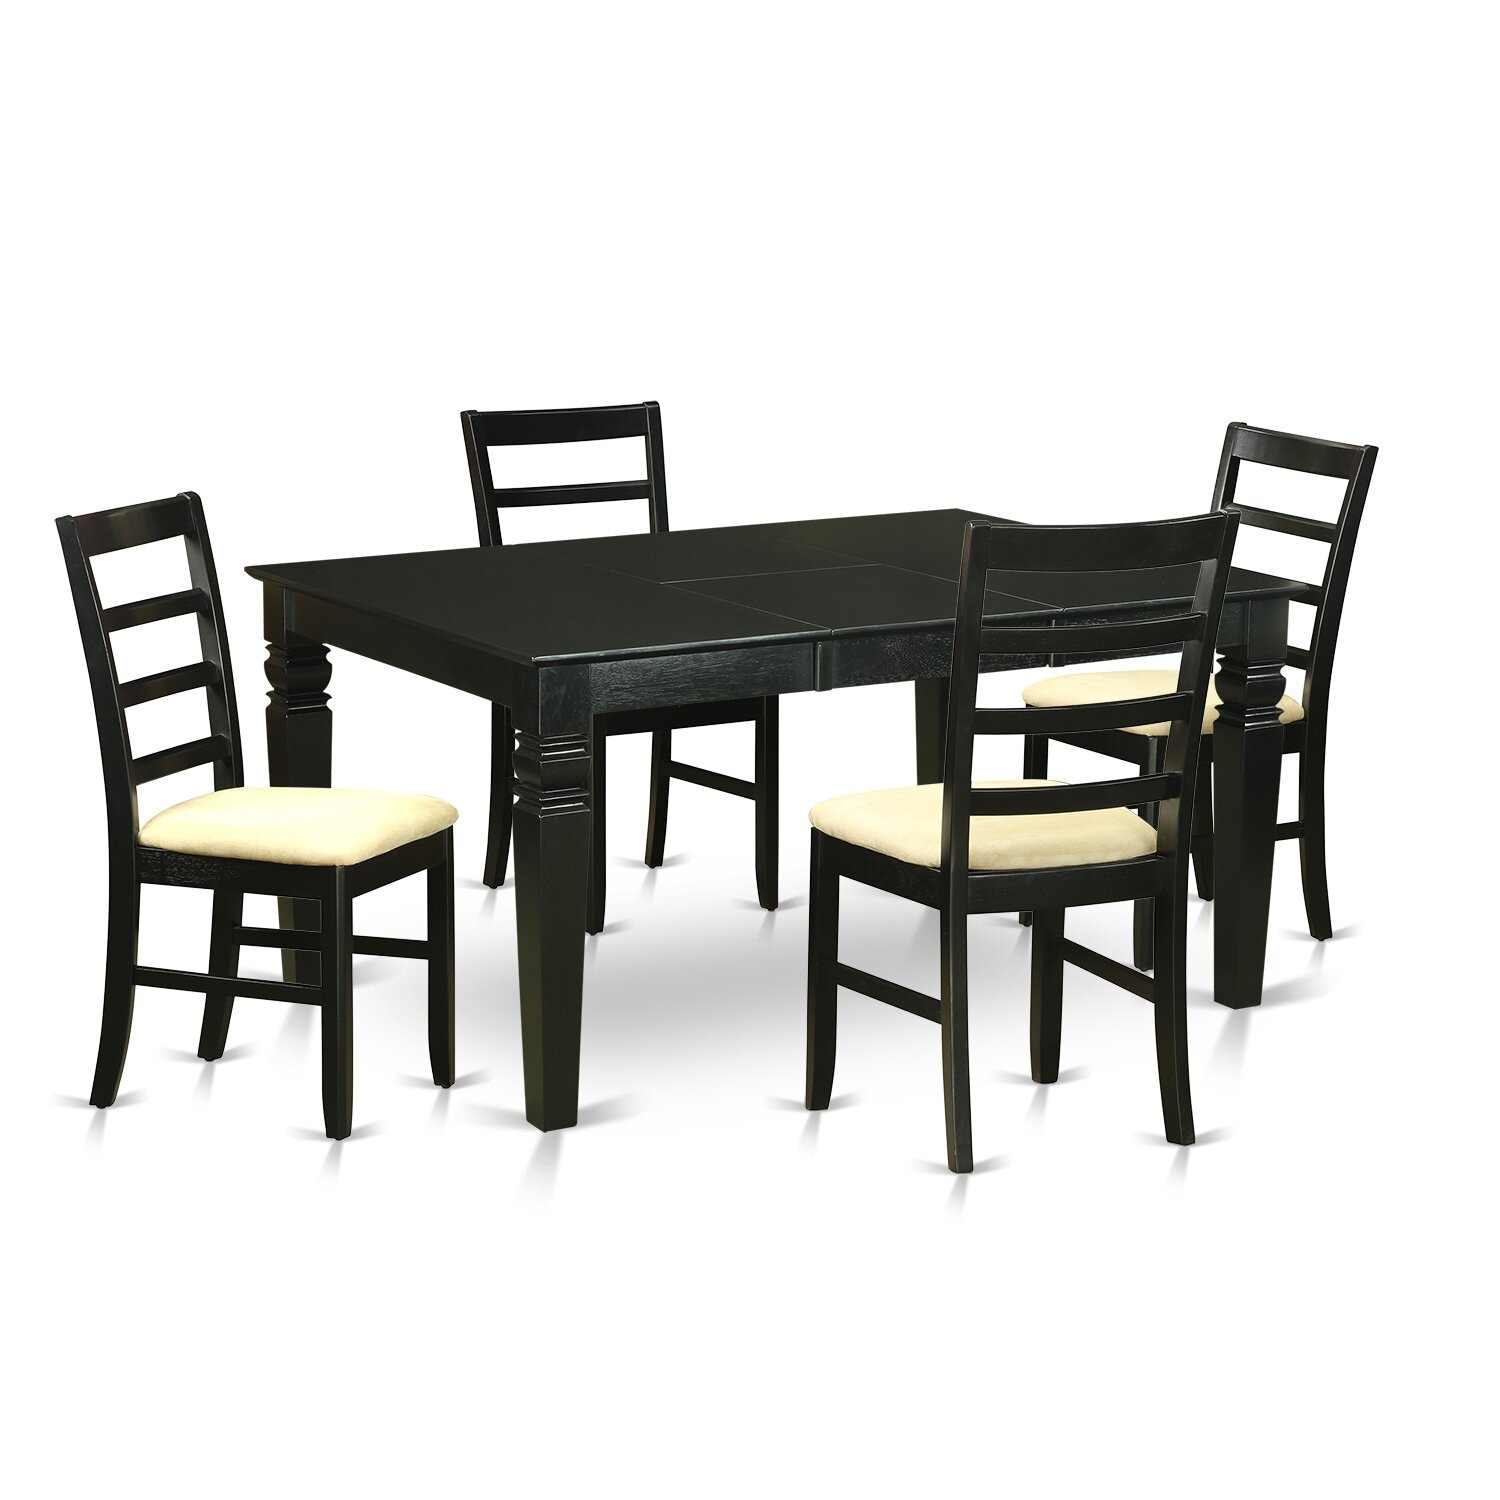 Wooden importers weston 5 piece dining set wayfair for Small kitchen table sets for 4